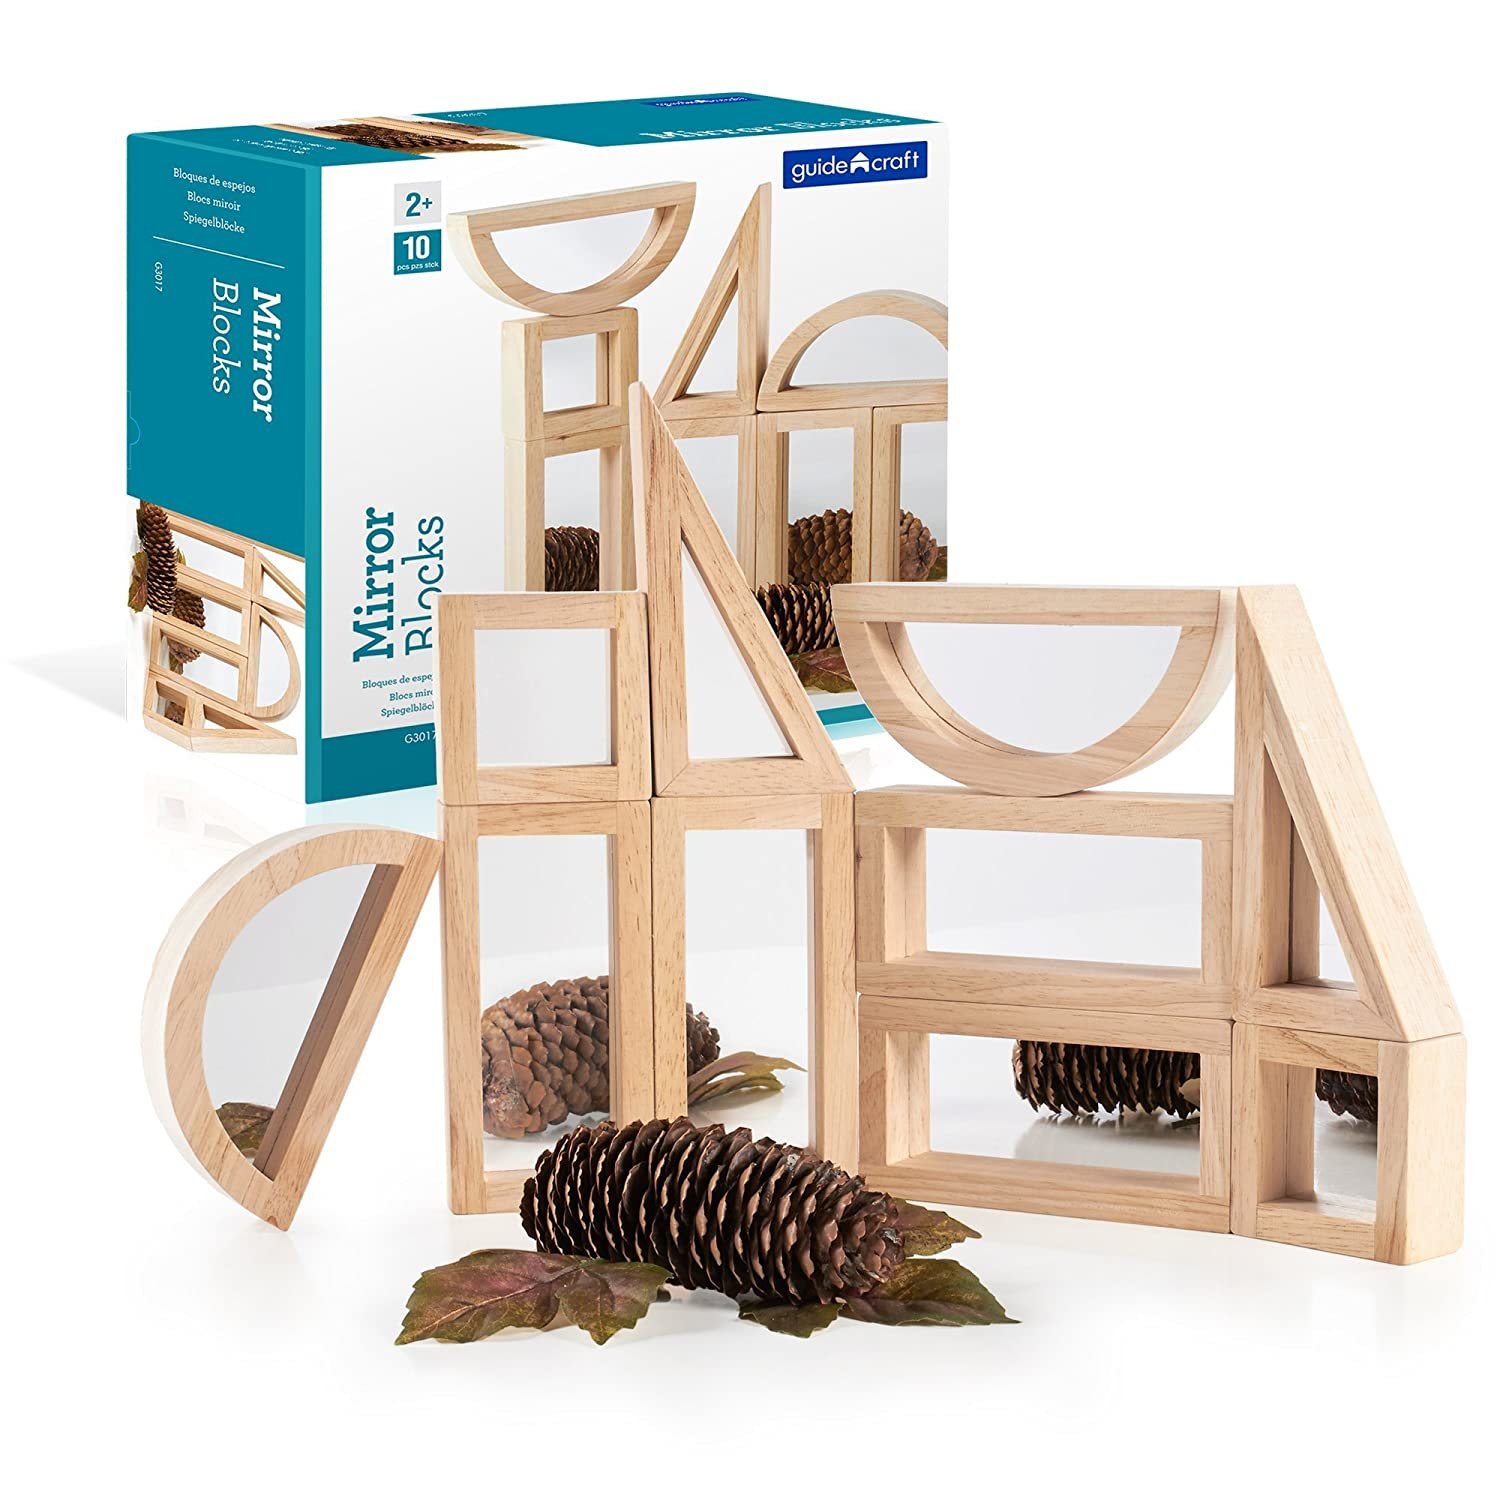 Top 7 Best Baby Blocks Reviews in 2019 4